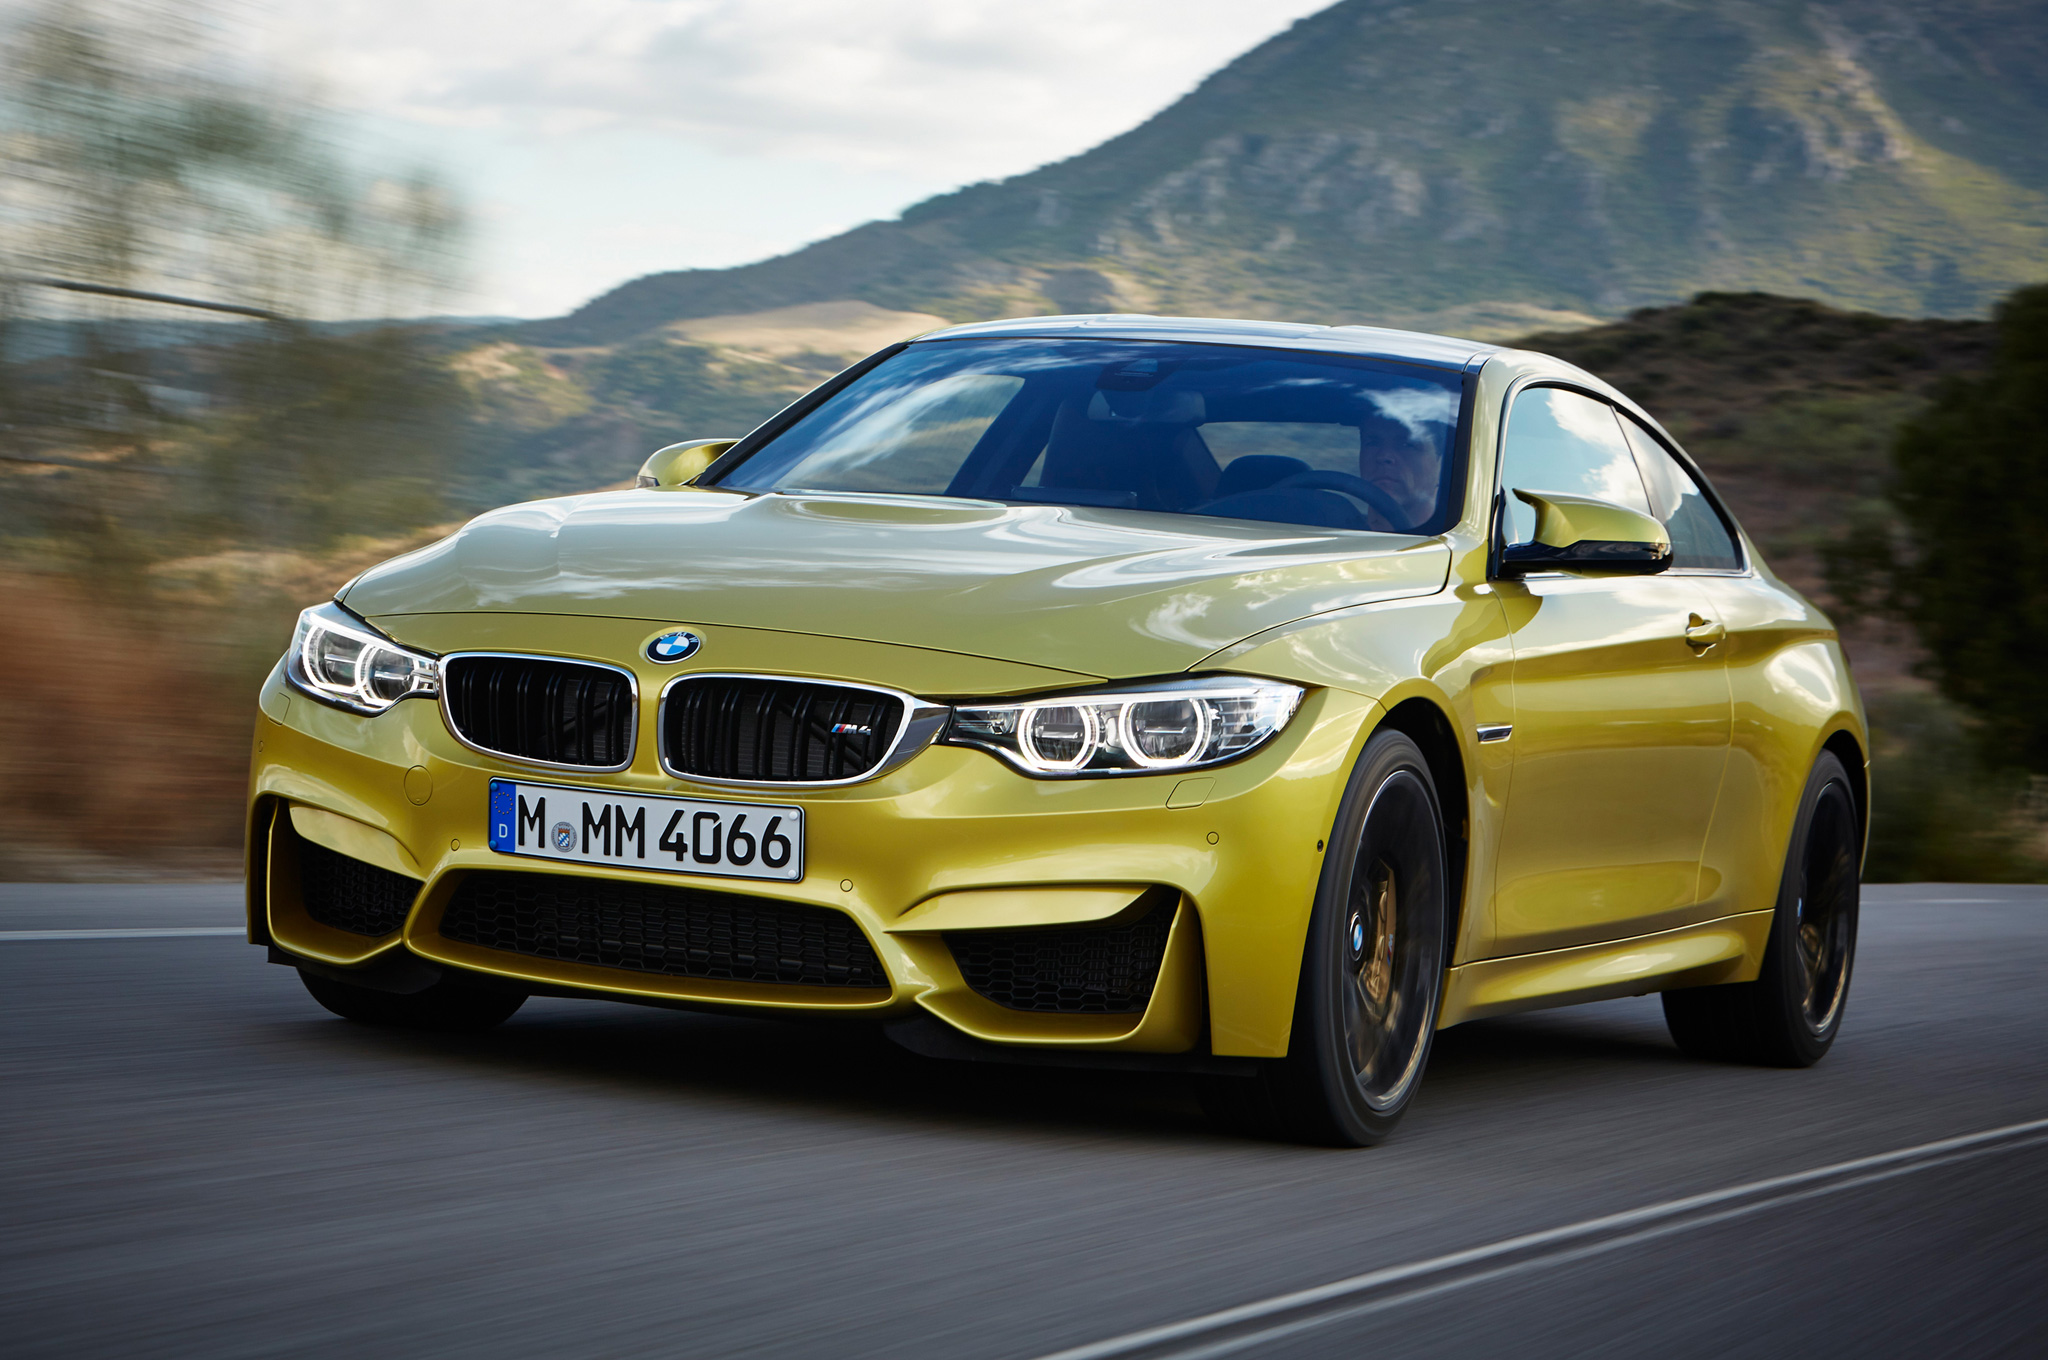 2015 Bmw M3 M4 Leaked 425 Hp High Rpm Turbo Six